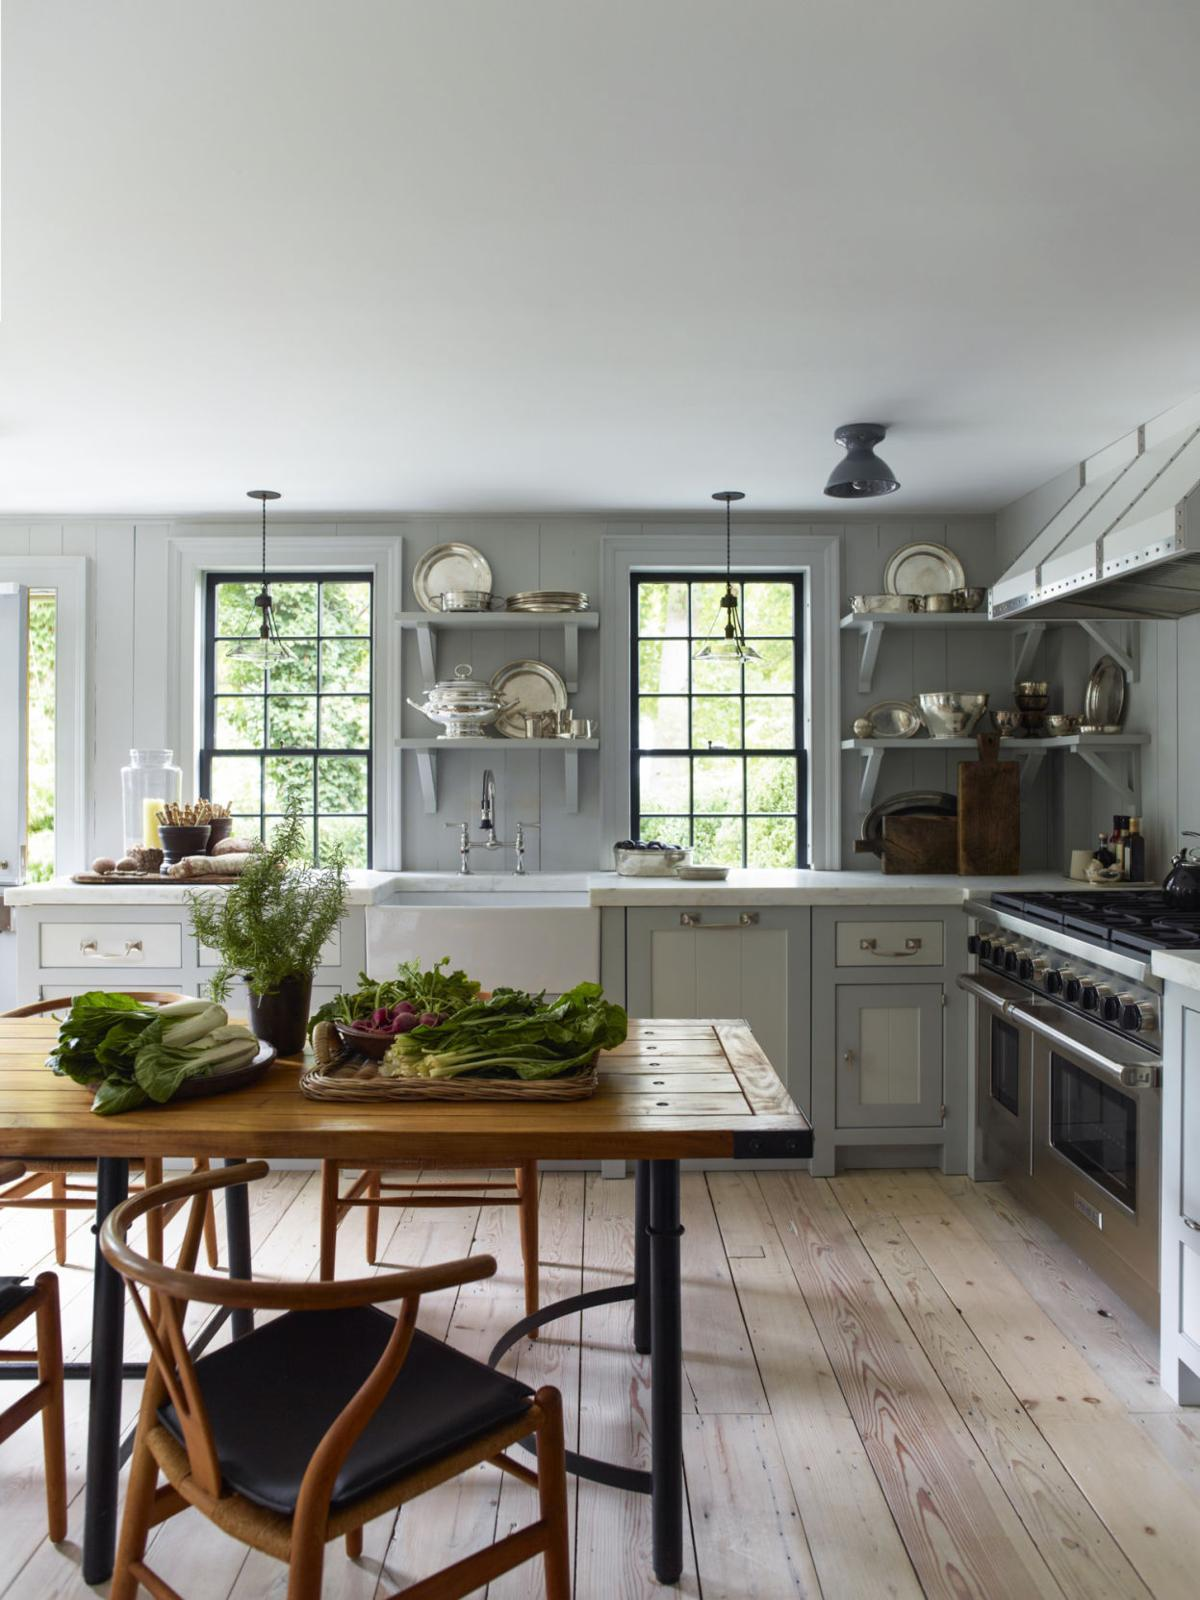 KITCHEN TABLES are making a comeback